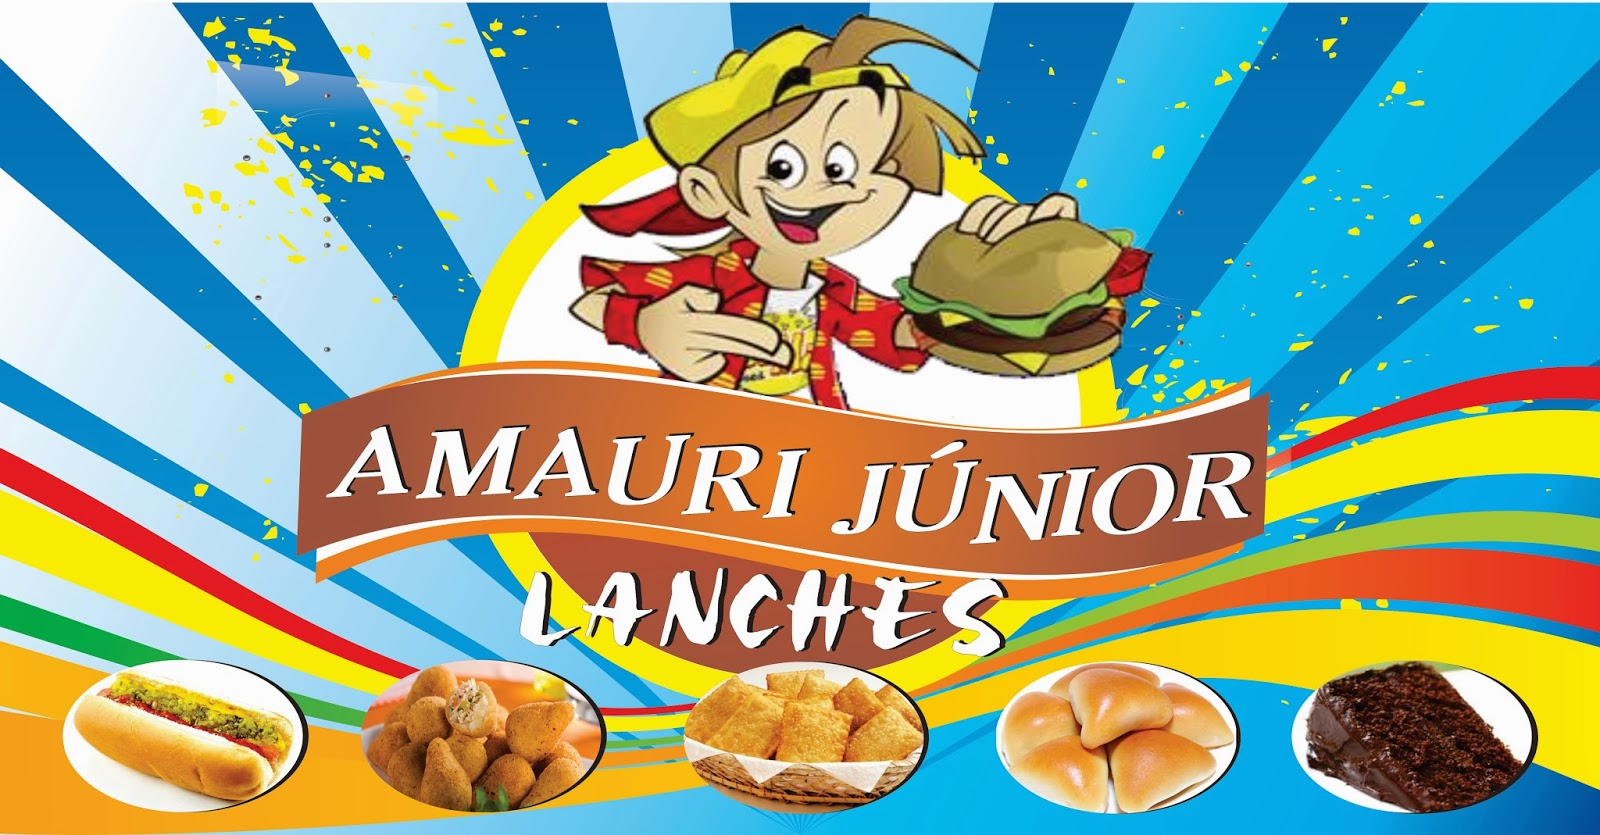 Amauri Júnior Lanches